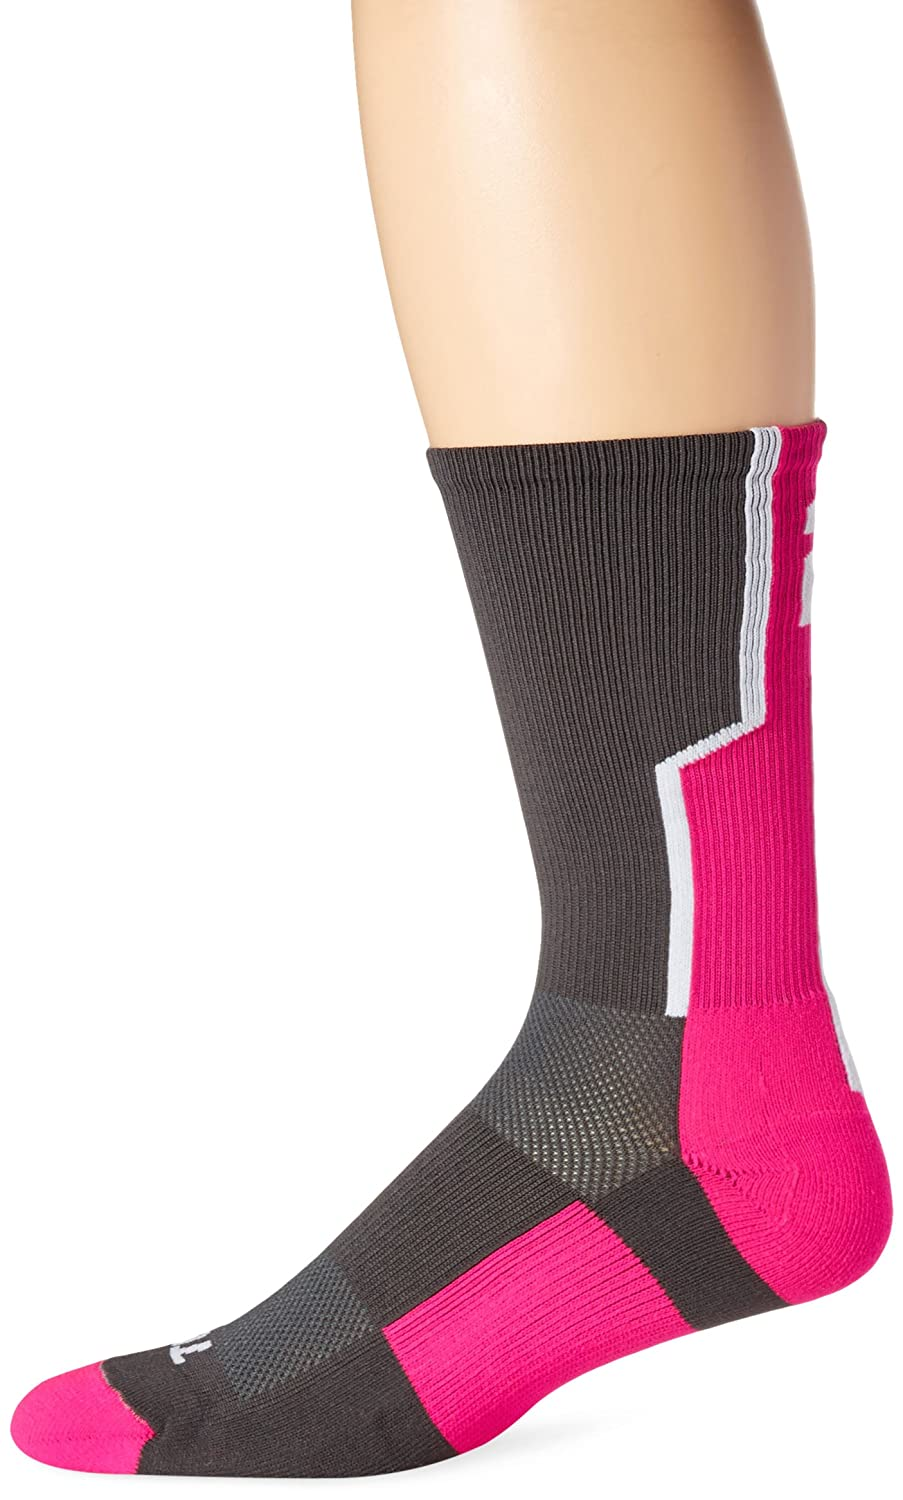 TCK Player Id番号Crew Sock – ピンク/グラファイト/ホワイト B014V6WR1S 2 Small Small|2